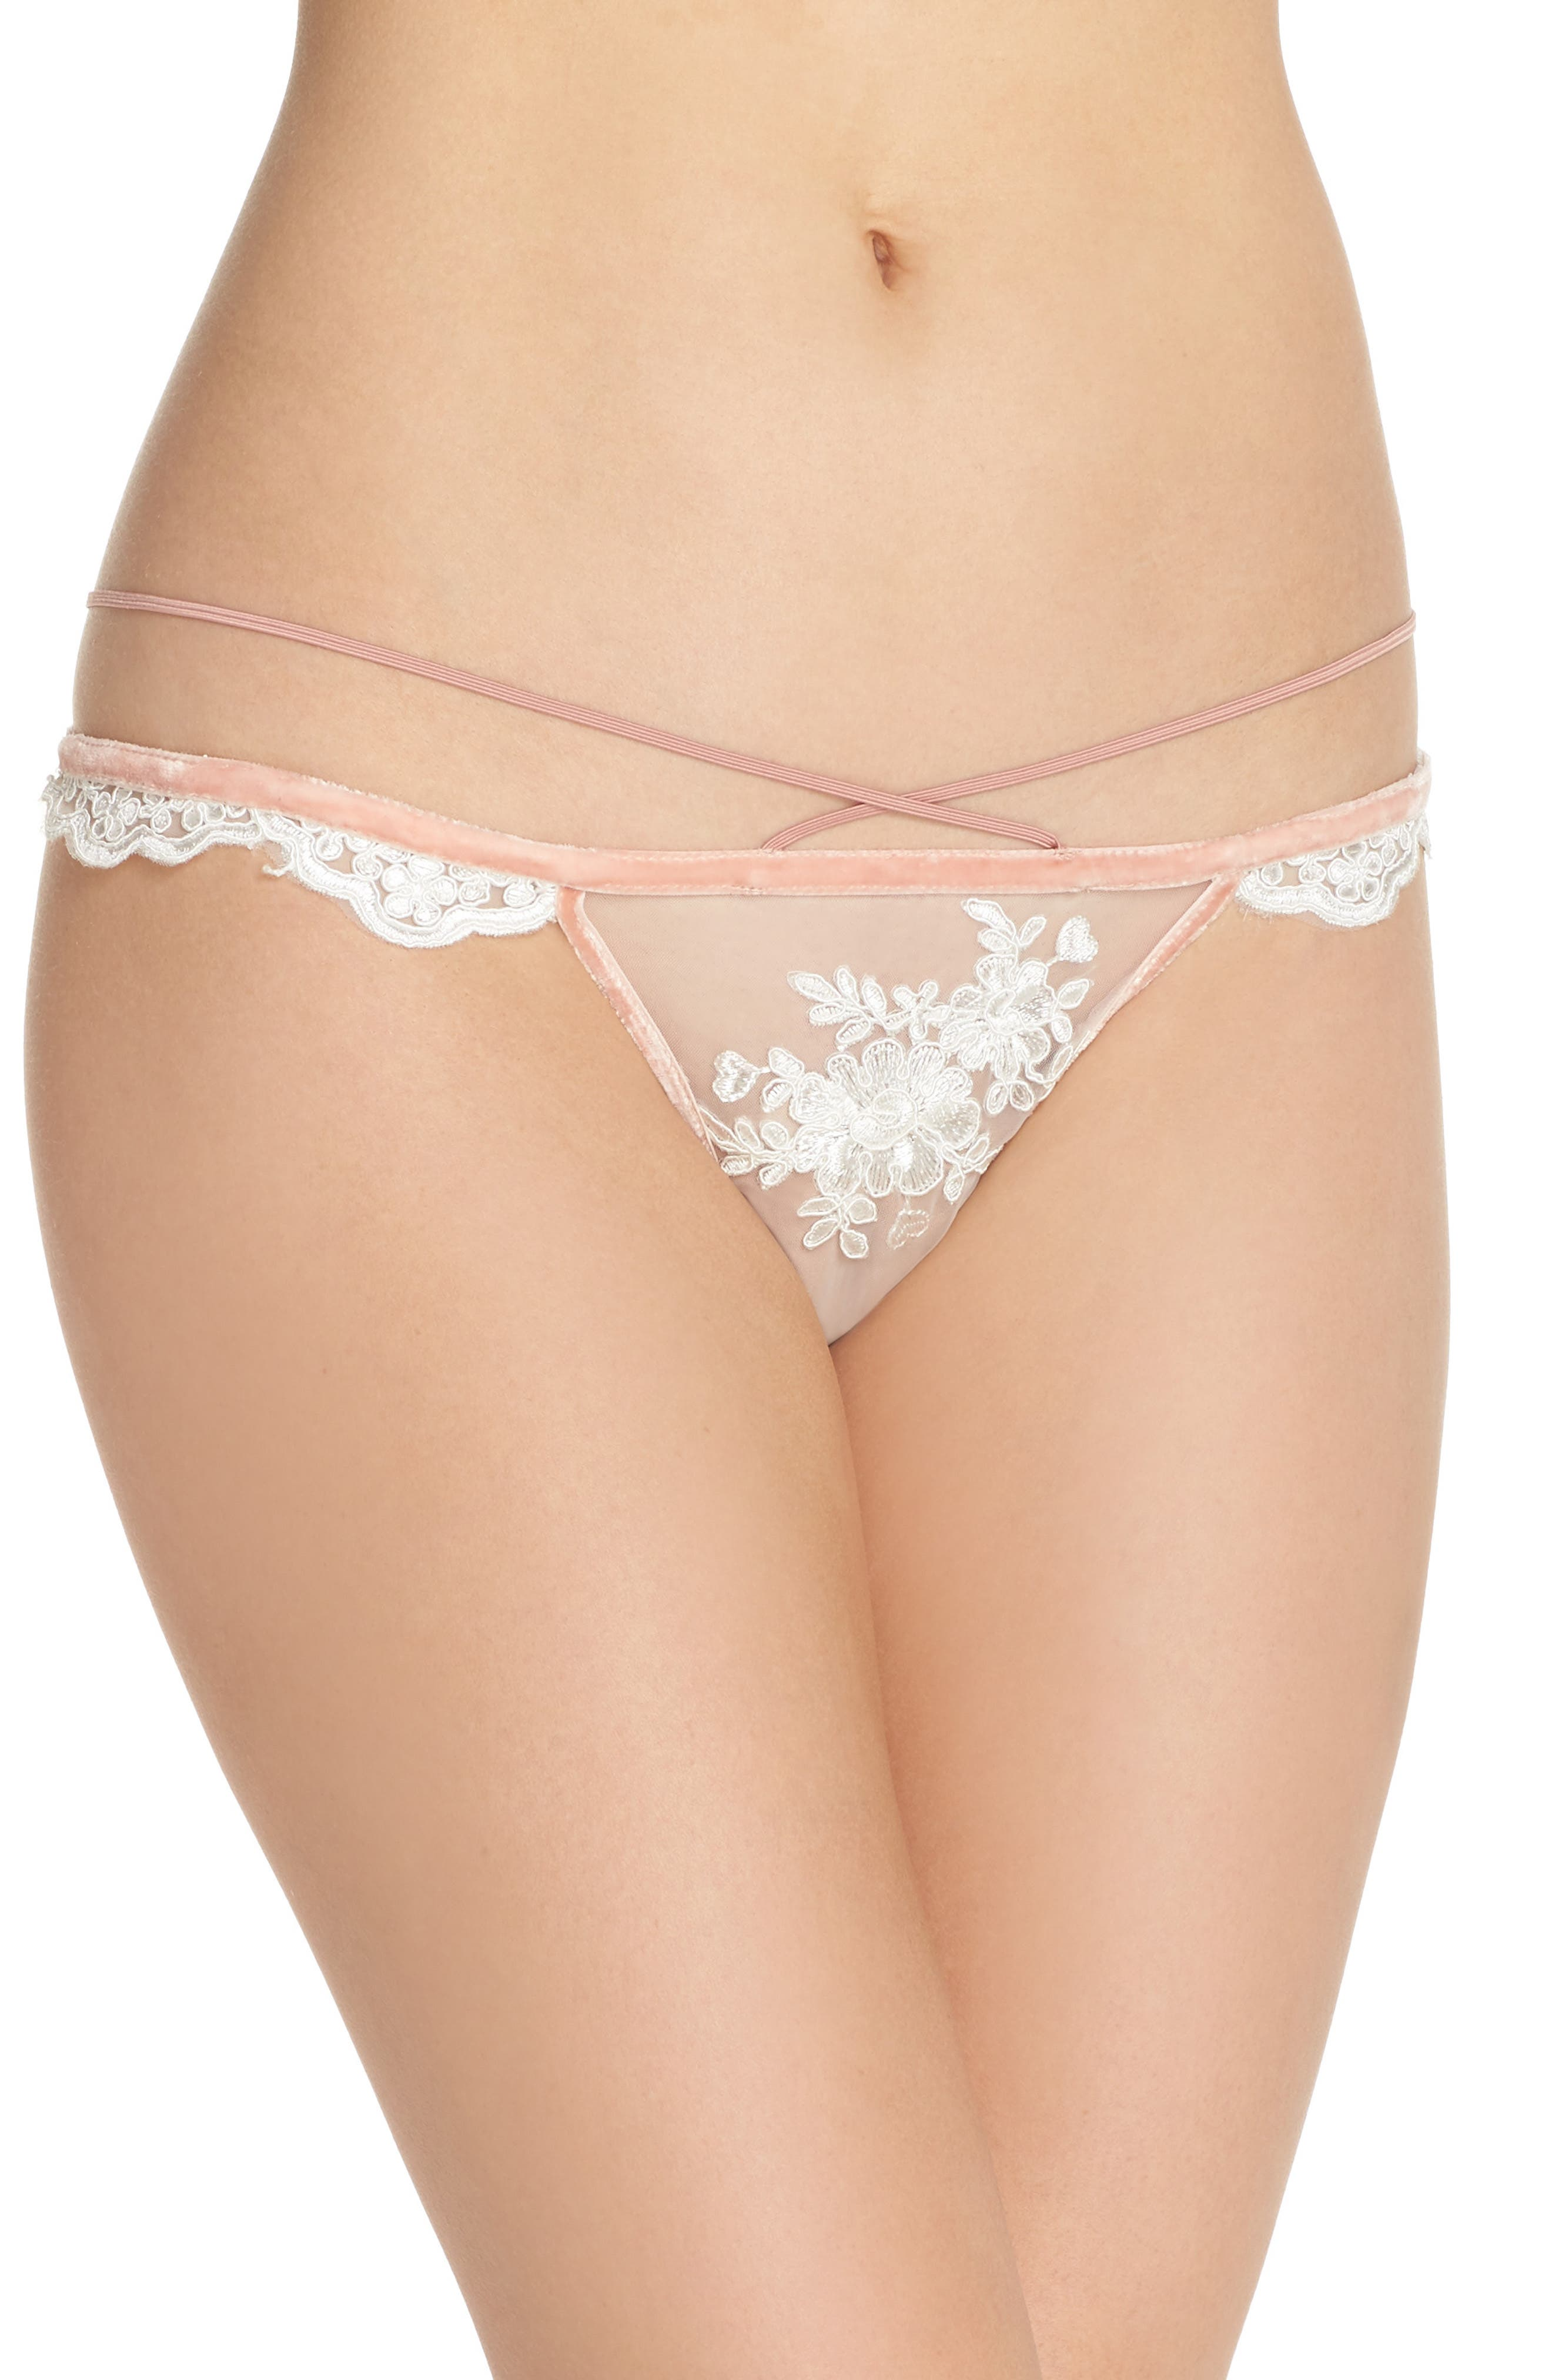 Alternate Image 1 Selected - For Love & Lemons Noemi Strappy Scallop Lace Thong